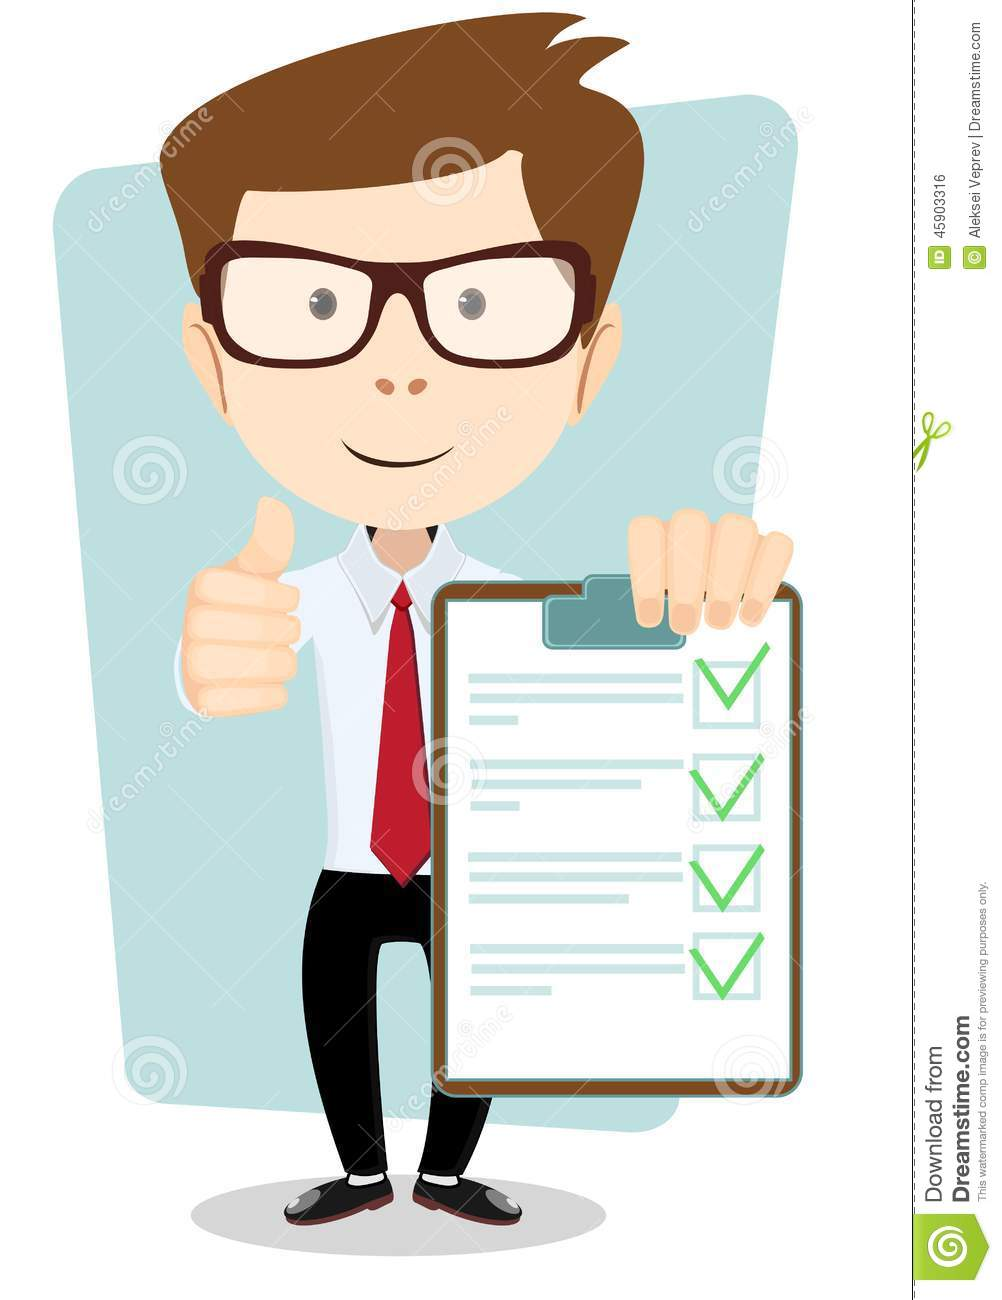 Young Man Holding A Paper With Green Flags, Vector Stock ...